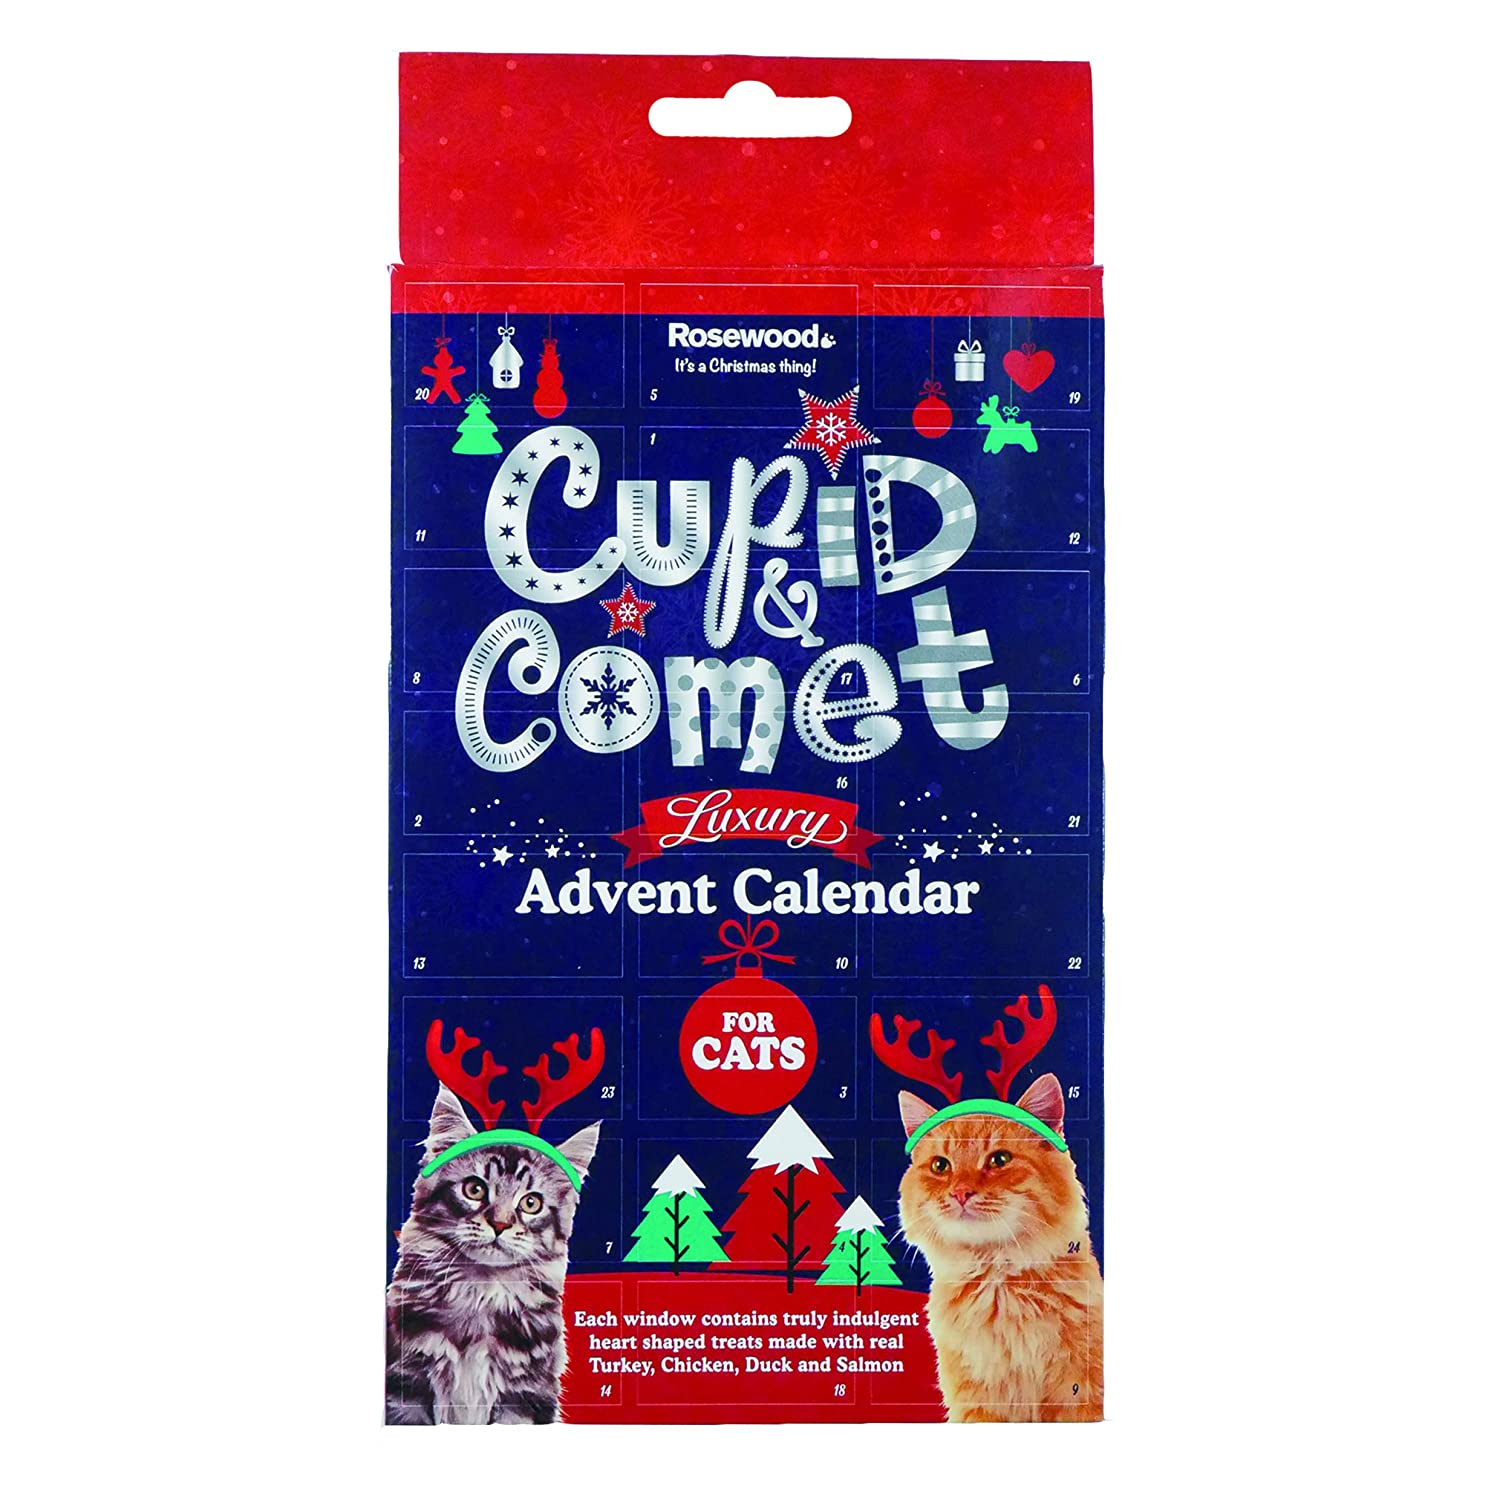 Luxury Advent Calendar for Cats Rosewood 90495